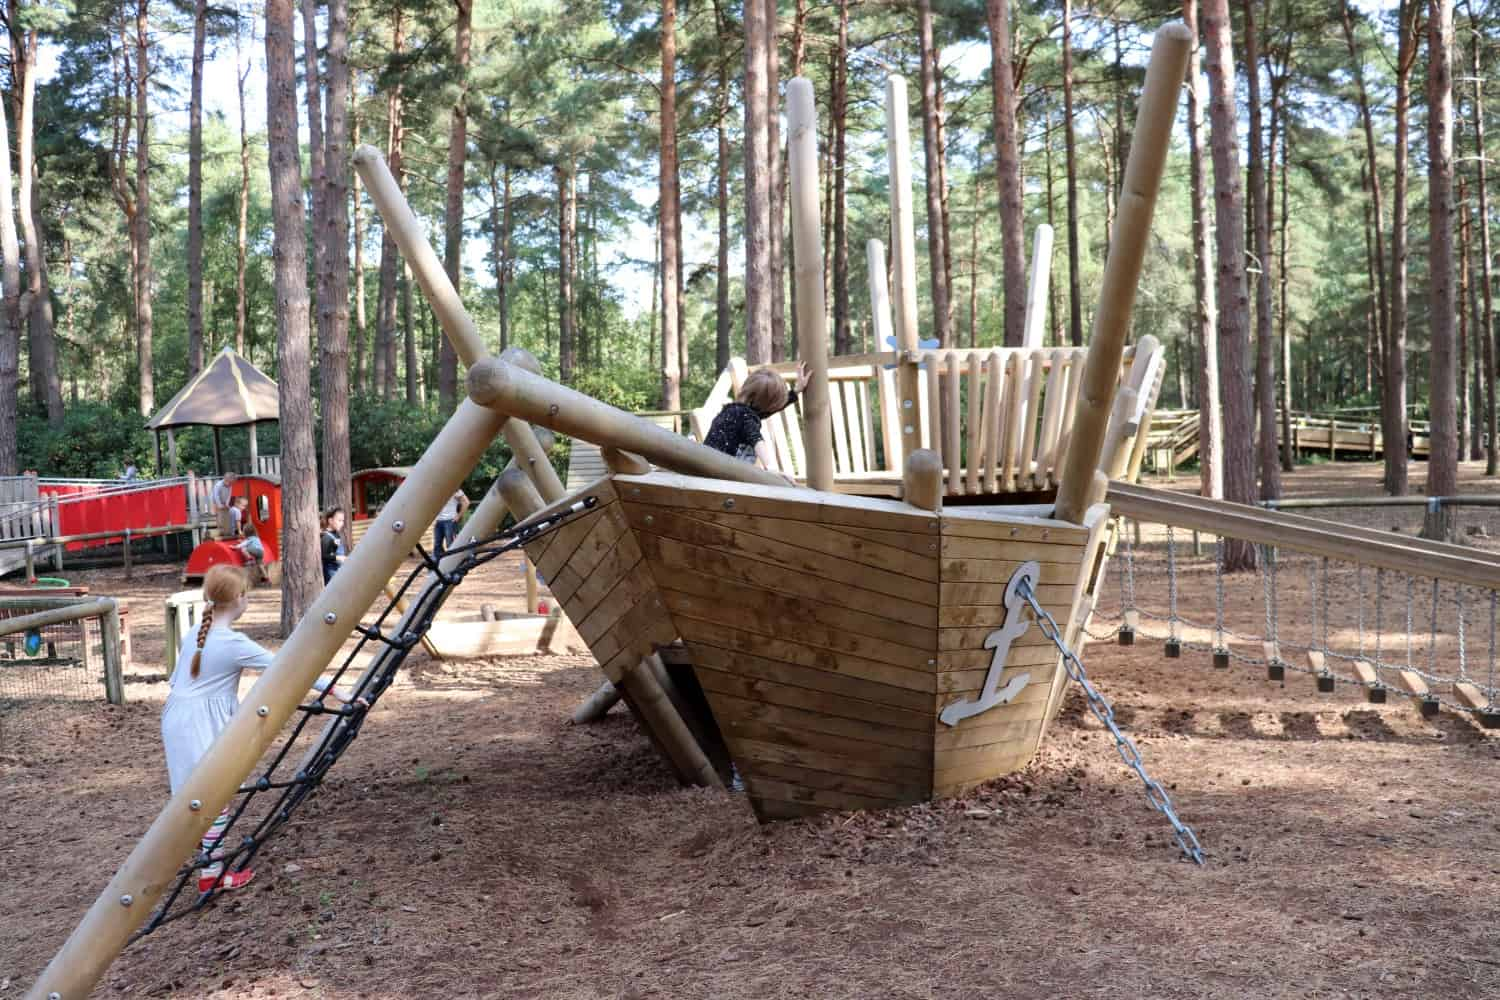 Short Stay and Play at The Lookout - Bracknell, Berkshire